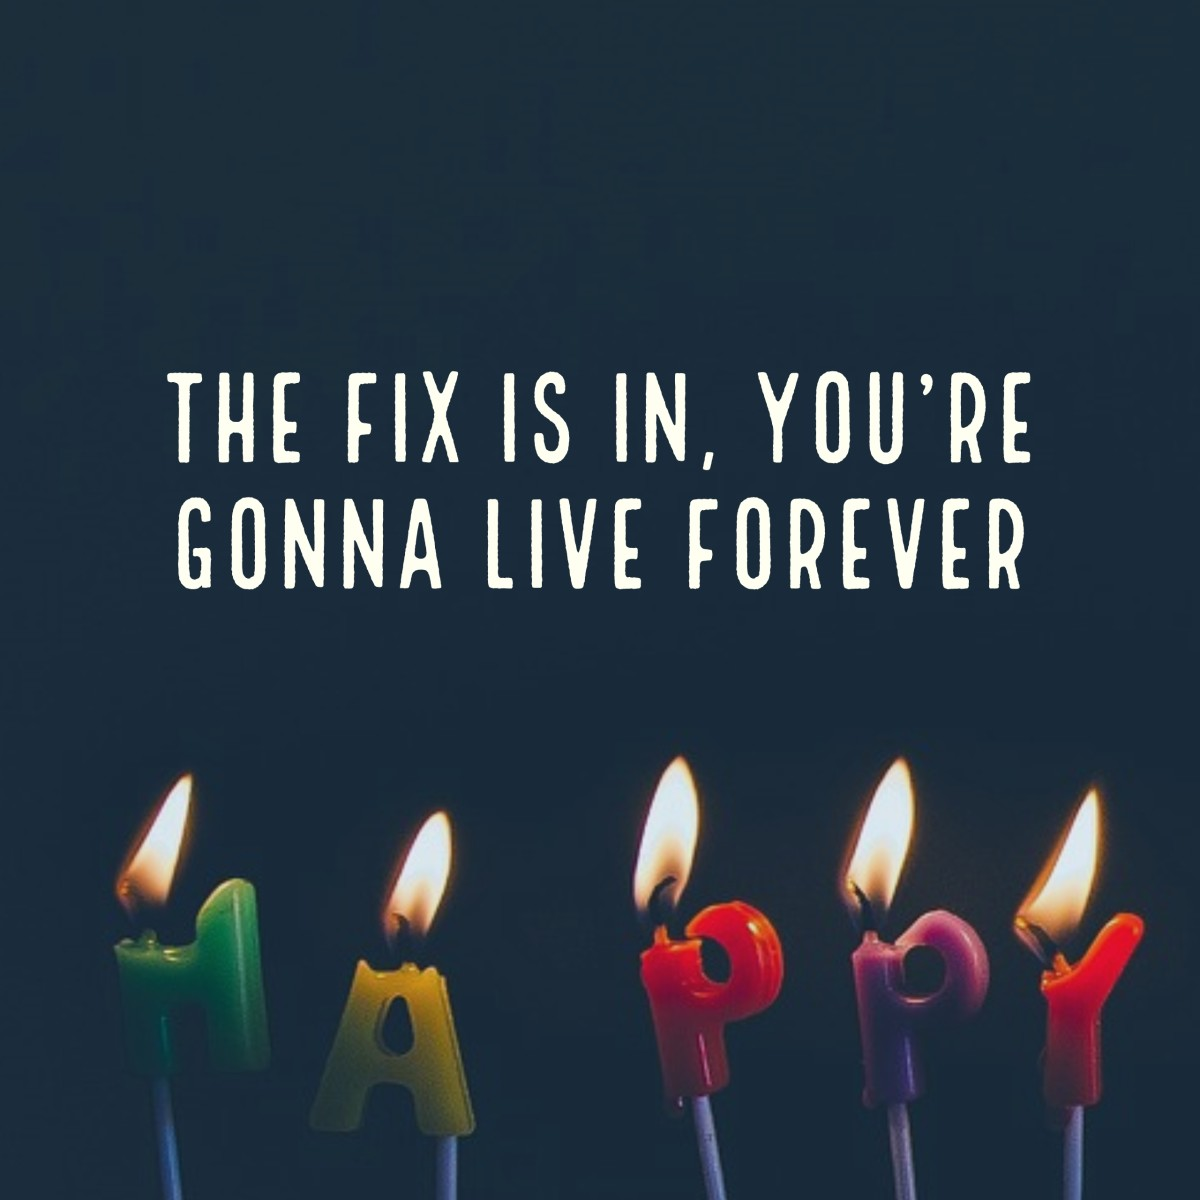 Sayings to write on a birthday cake: The fix is in, you're gonna live forever